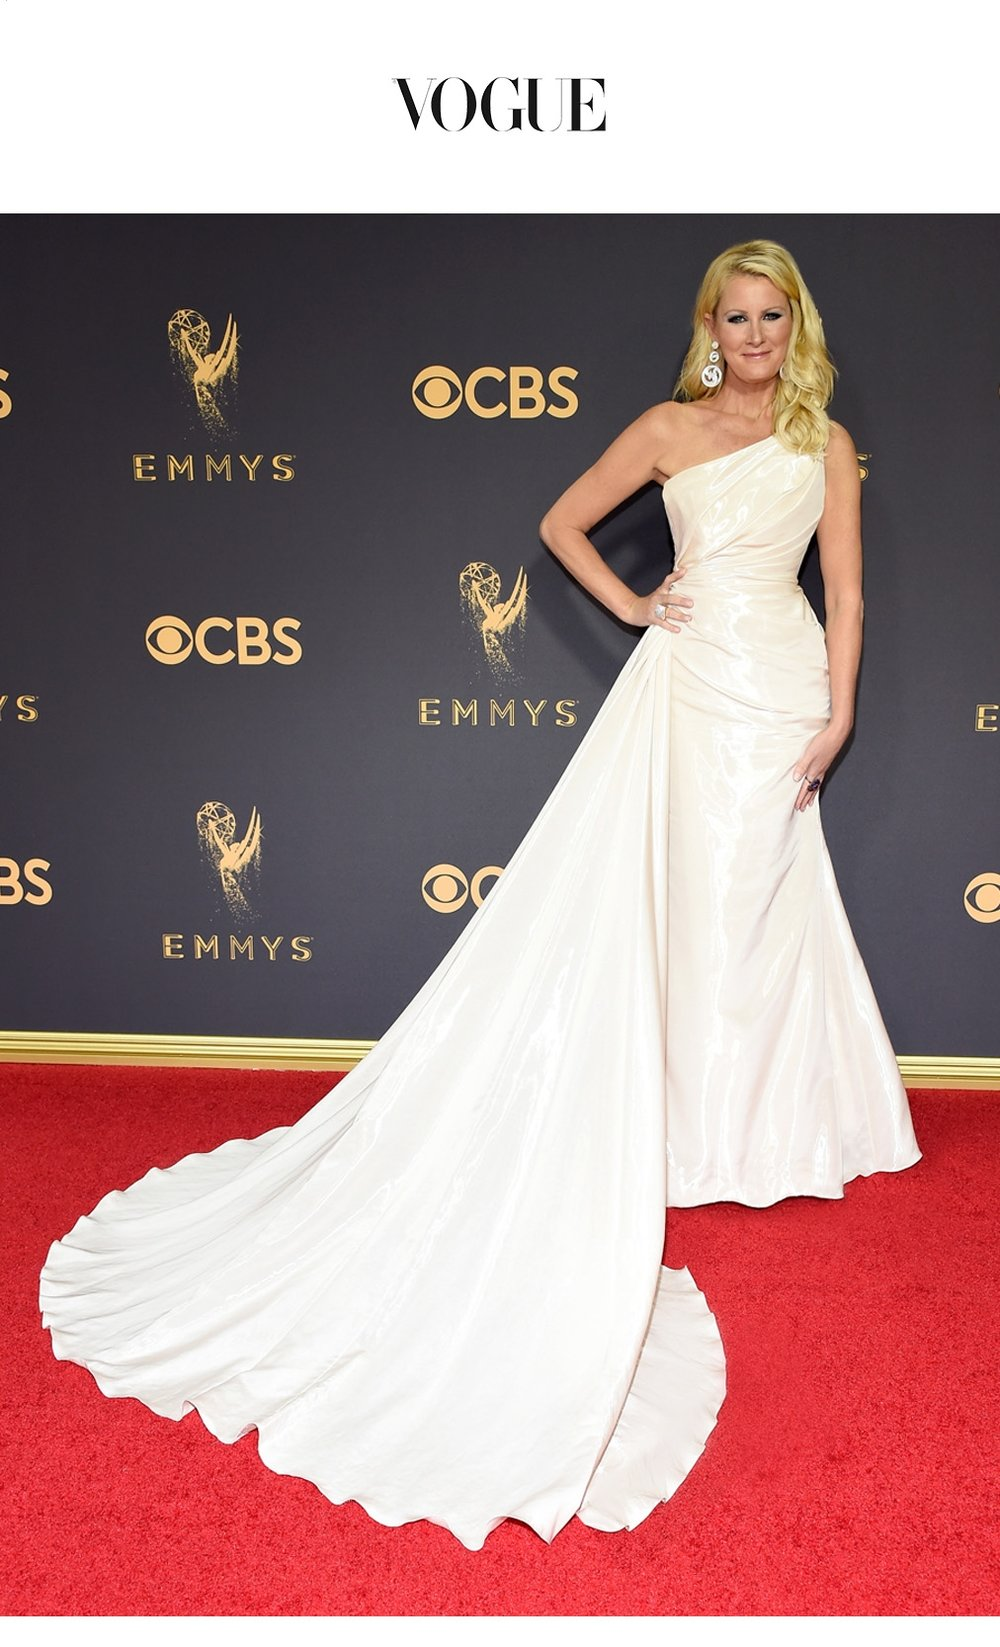 IN-THE-NEWS-WEB-EMMYS-2017-CELEBRITY-CHEF-SANDRA-LEE.jpg